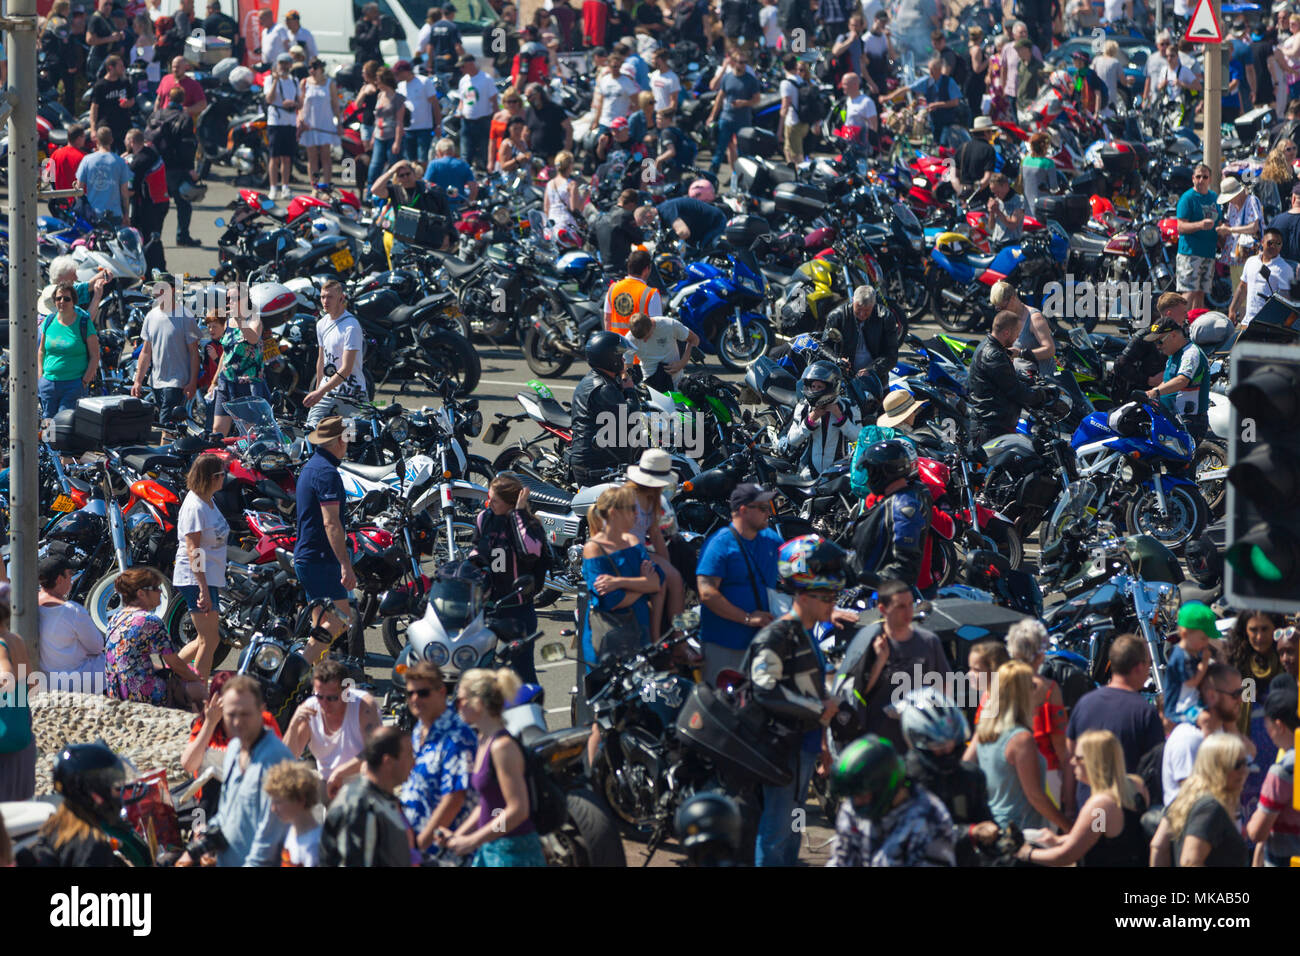 Thousands of people and motorbikes gather for the 40th year of bike 1066, may day run in hastings, east sussex, uk Stock Photo